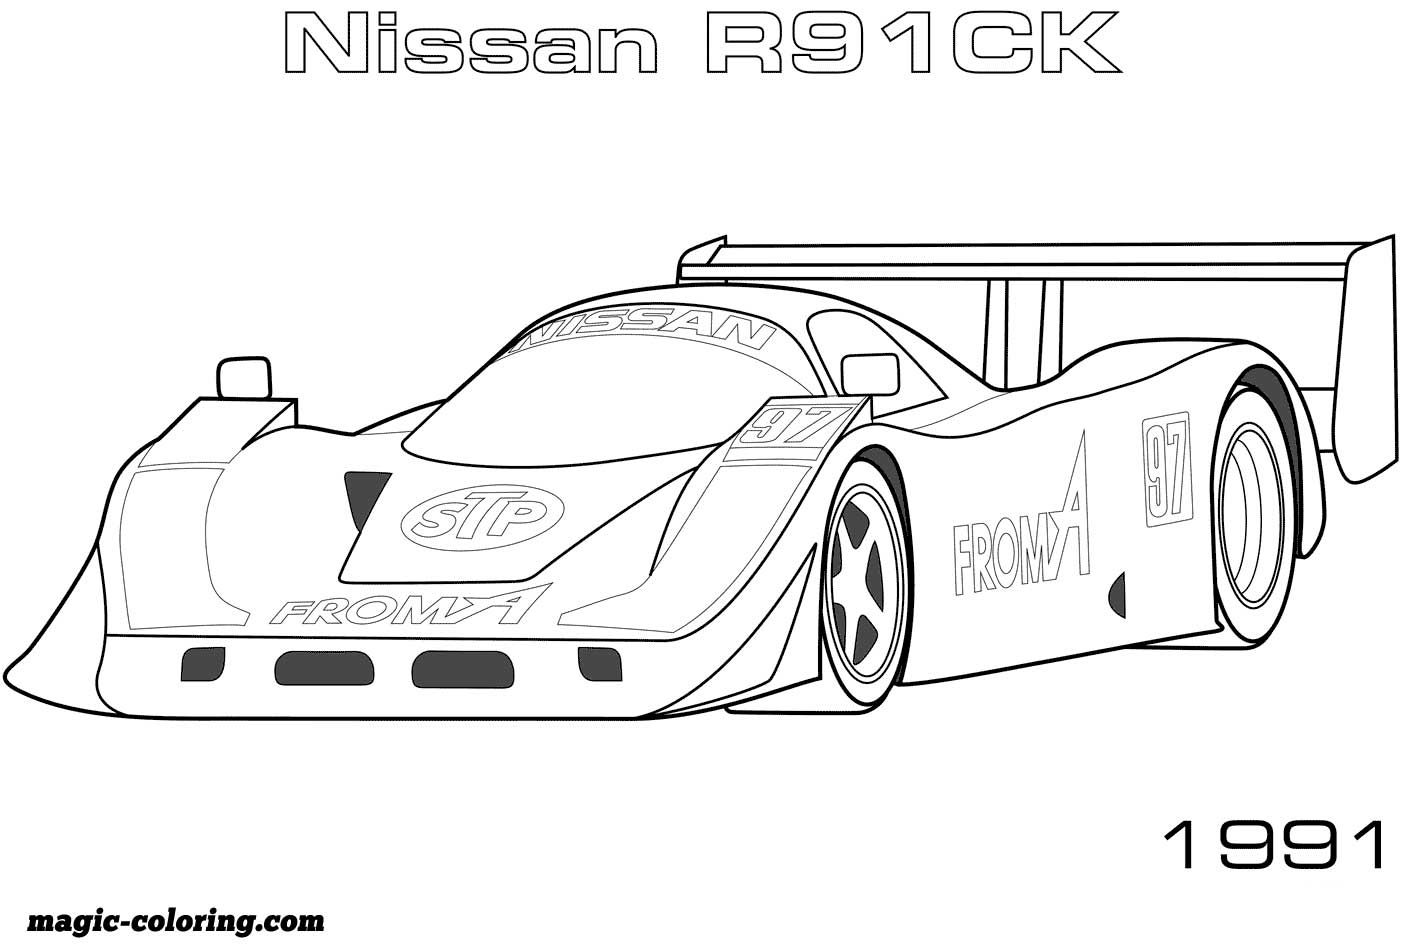 1991 Nissan R90c Coloring Page Sports Coloring Pages Coloring Pages Race Car Coloring Pages